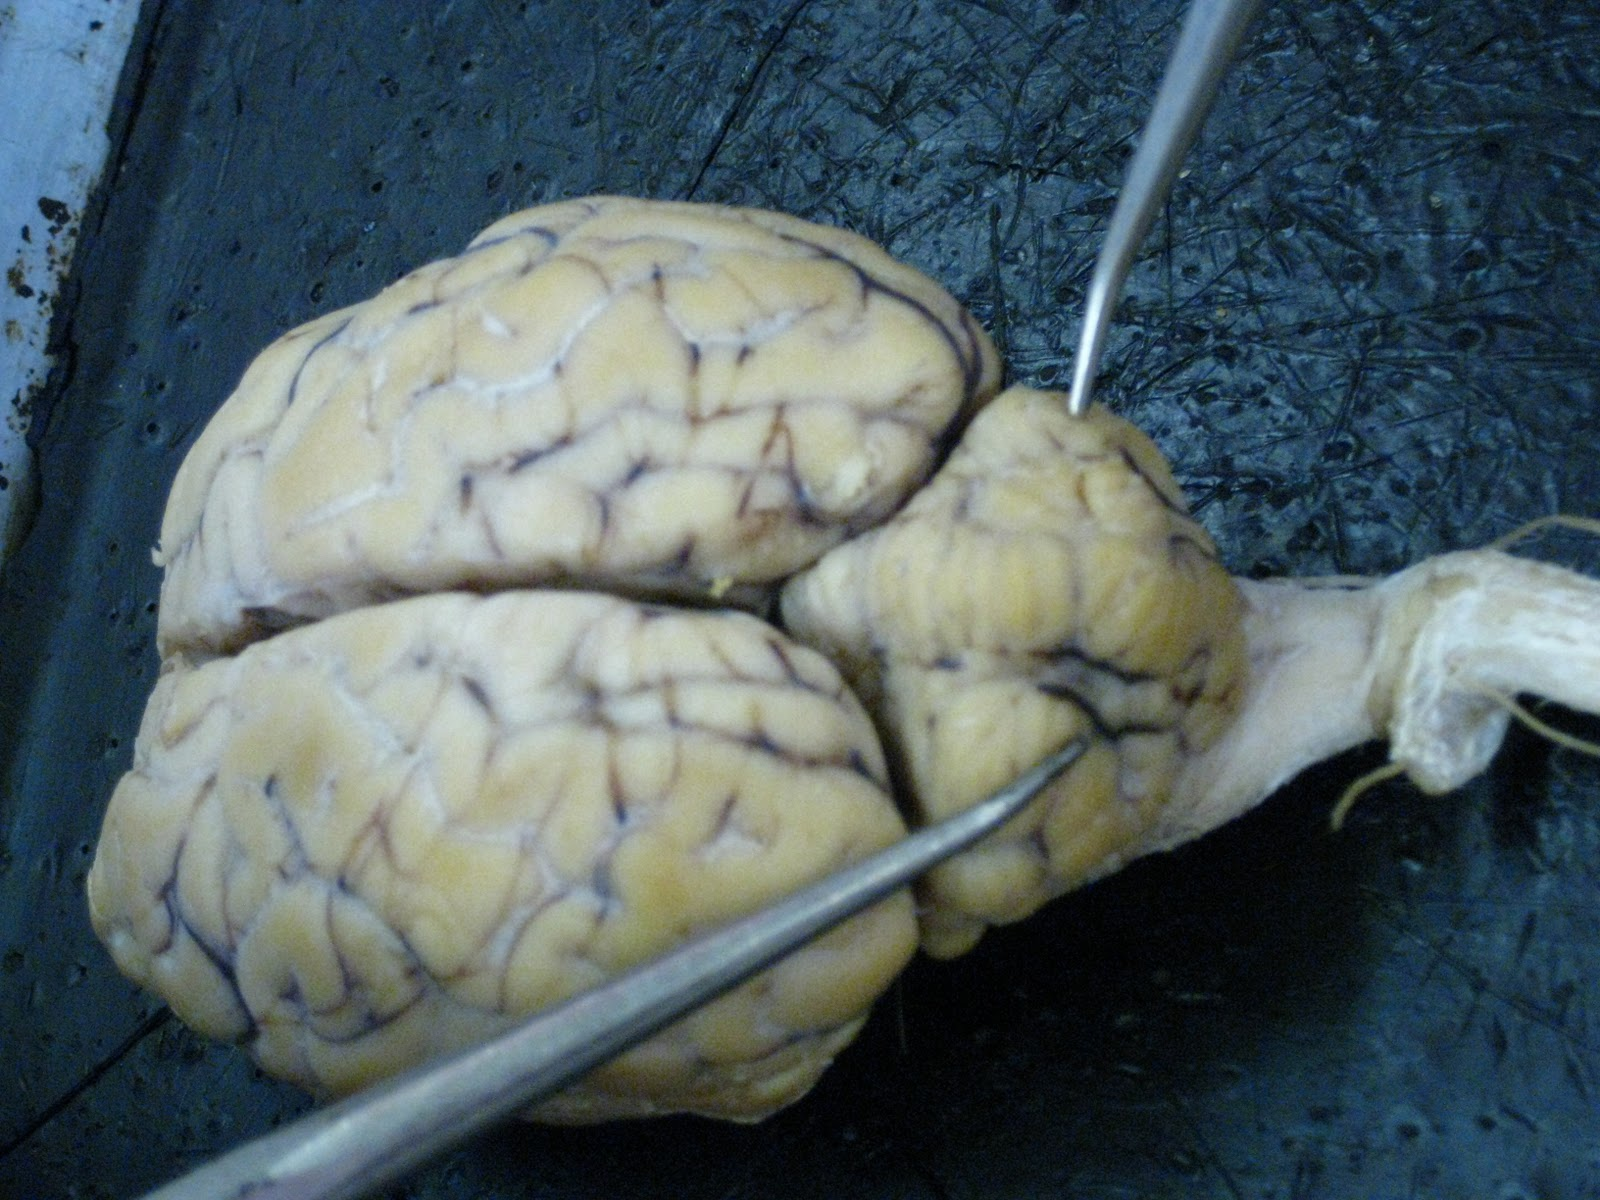 Sheep for Brains: Sheep Brain - External gross anatomy